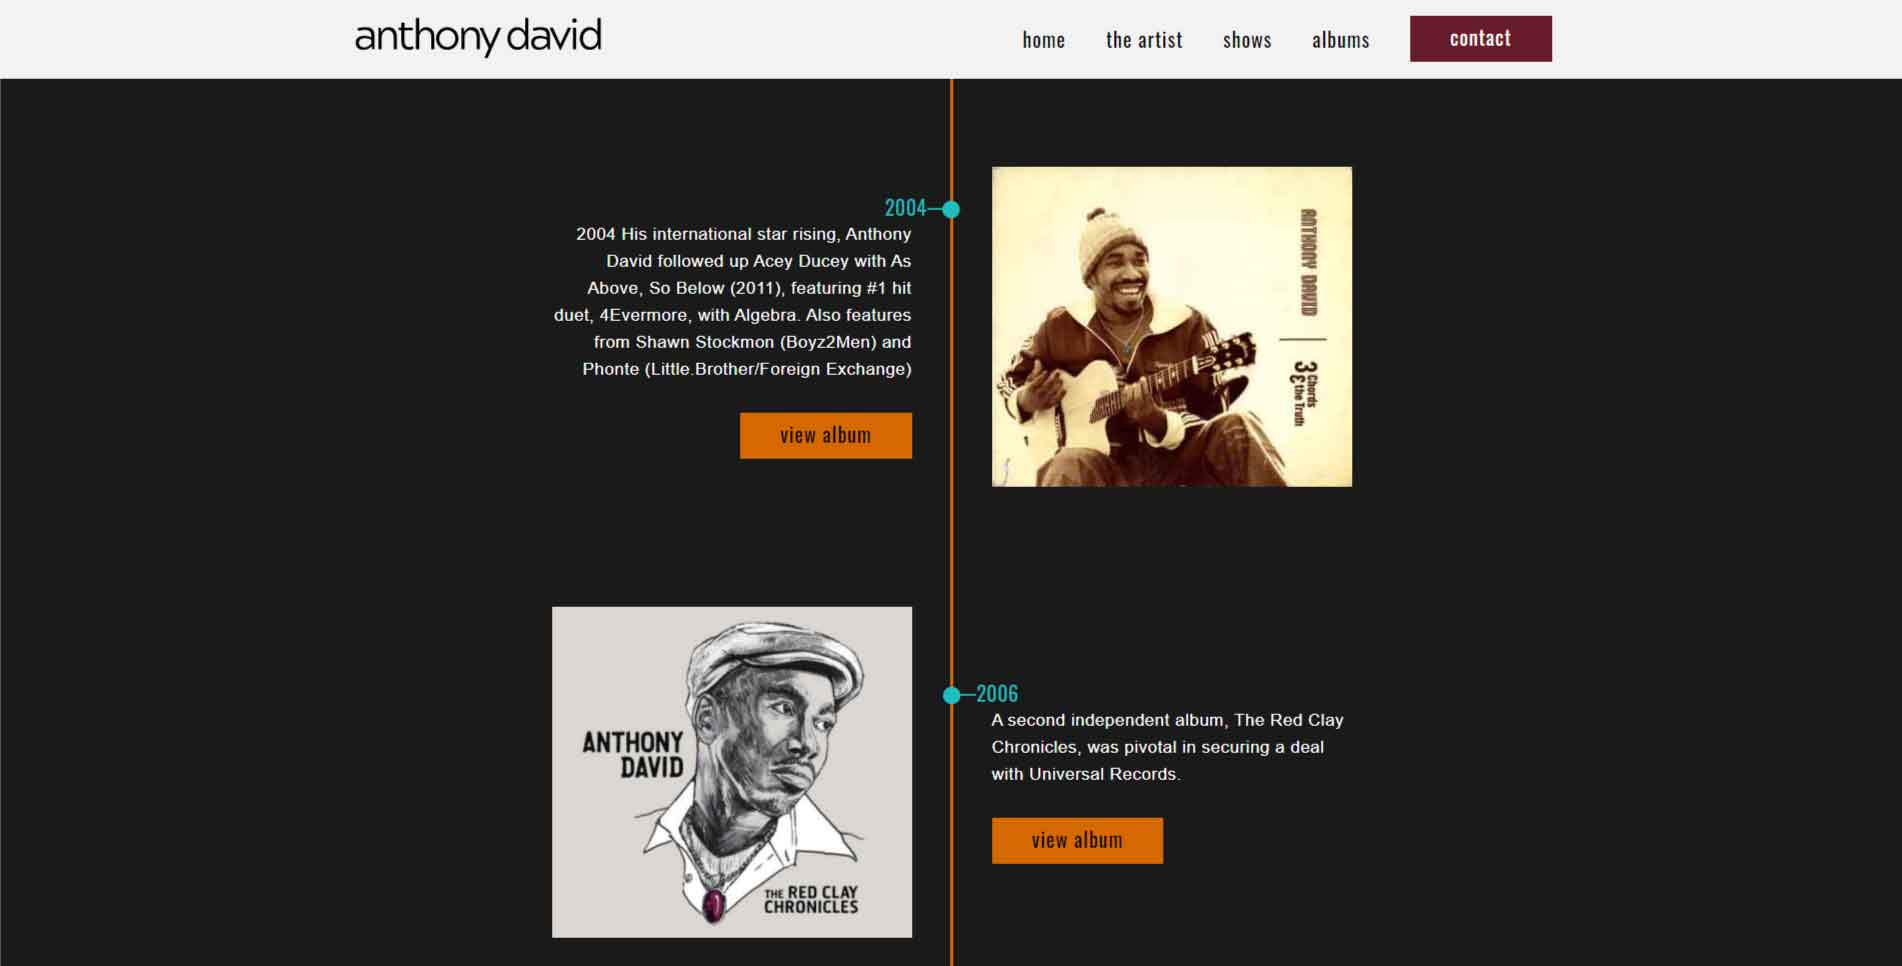 anthonydavid timeline section